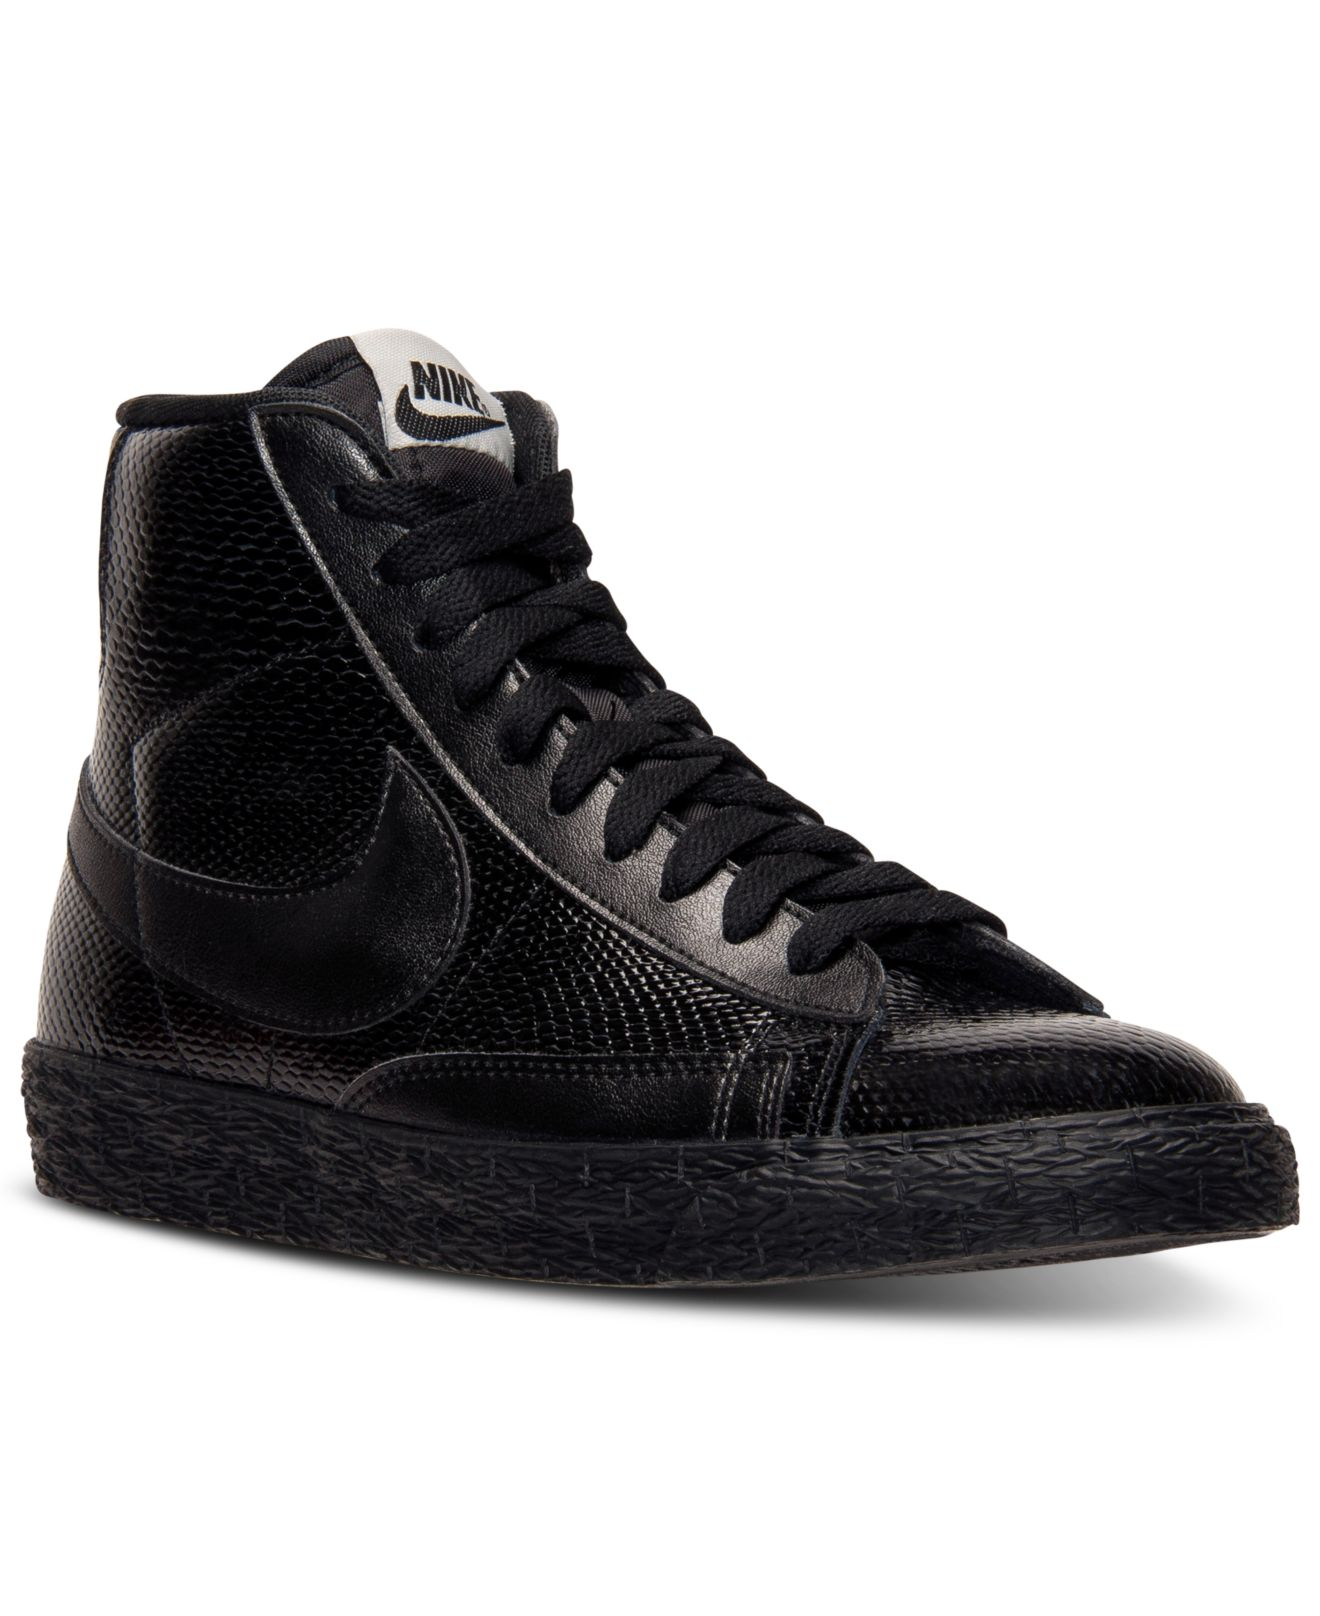 28364fcaff61 Lyst - Nike Women S Blazer Mid Leather Premium Casual Sneakers From ...